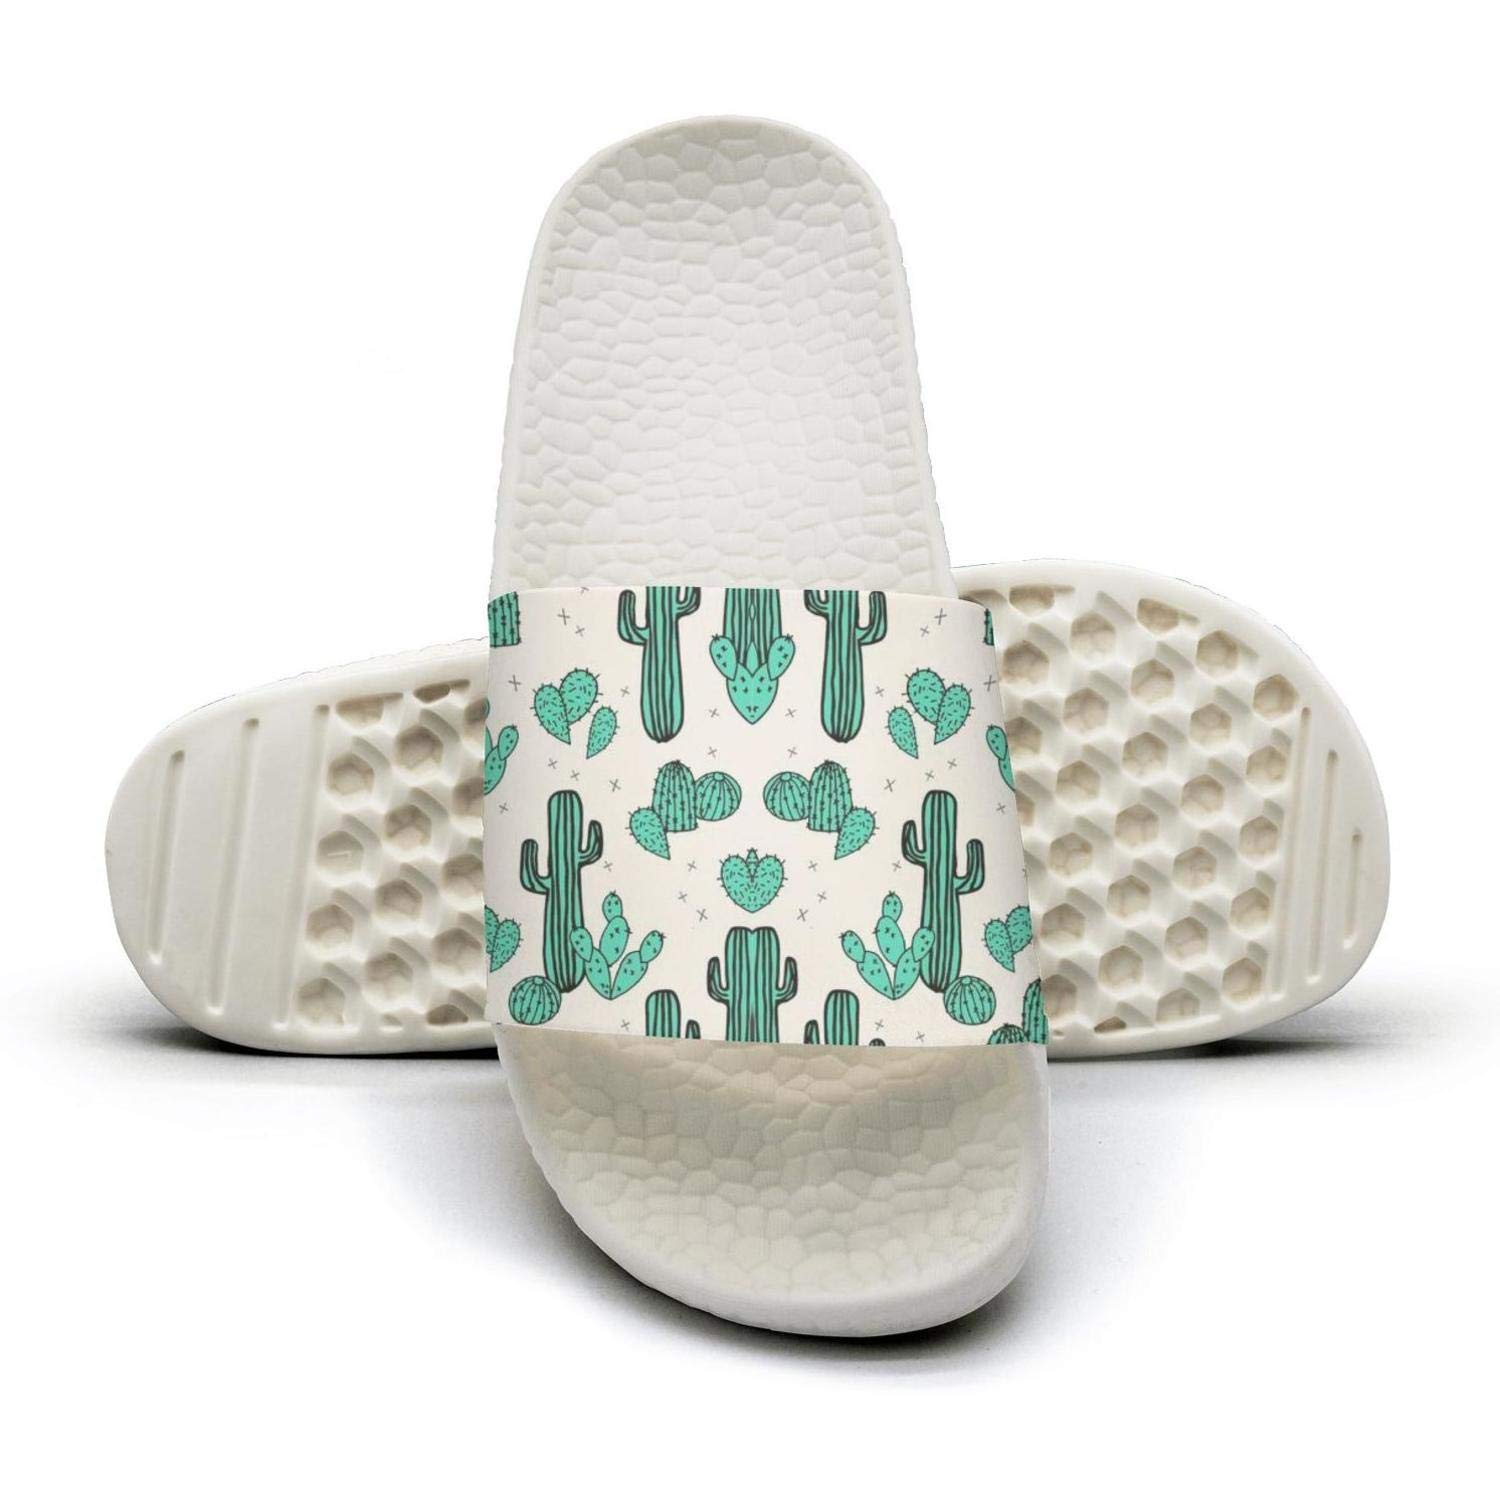 NAILINA Cactus Cacti Drawing Slippers Women Slip on Sandals Cool Slides Shoes